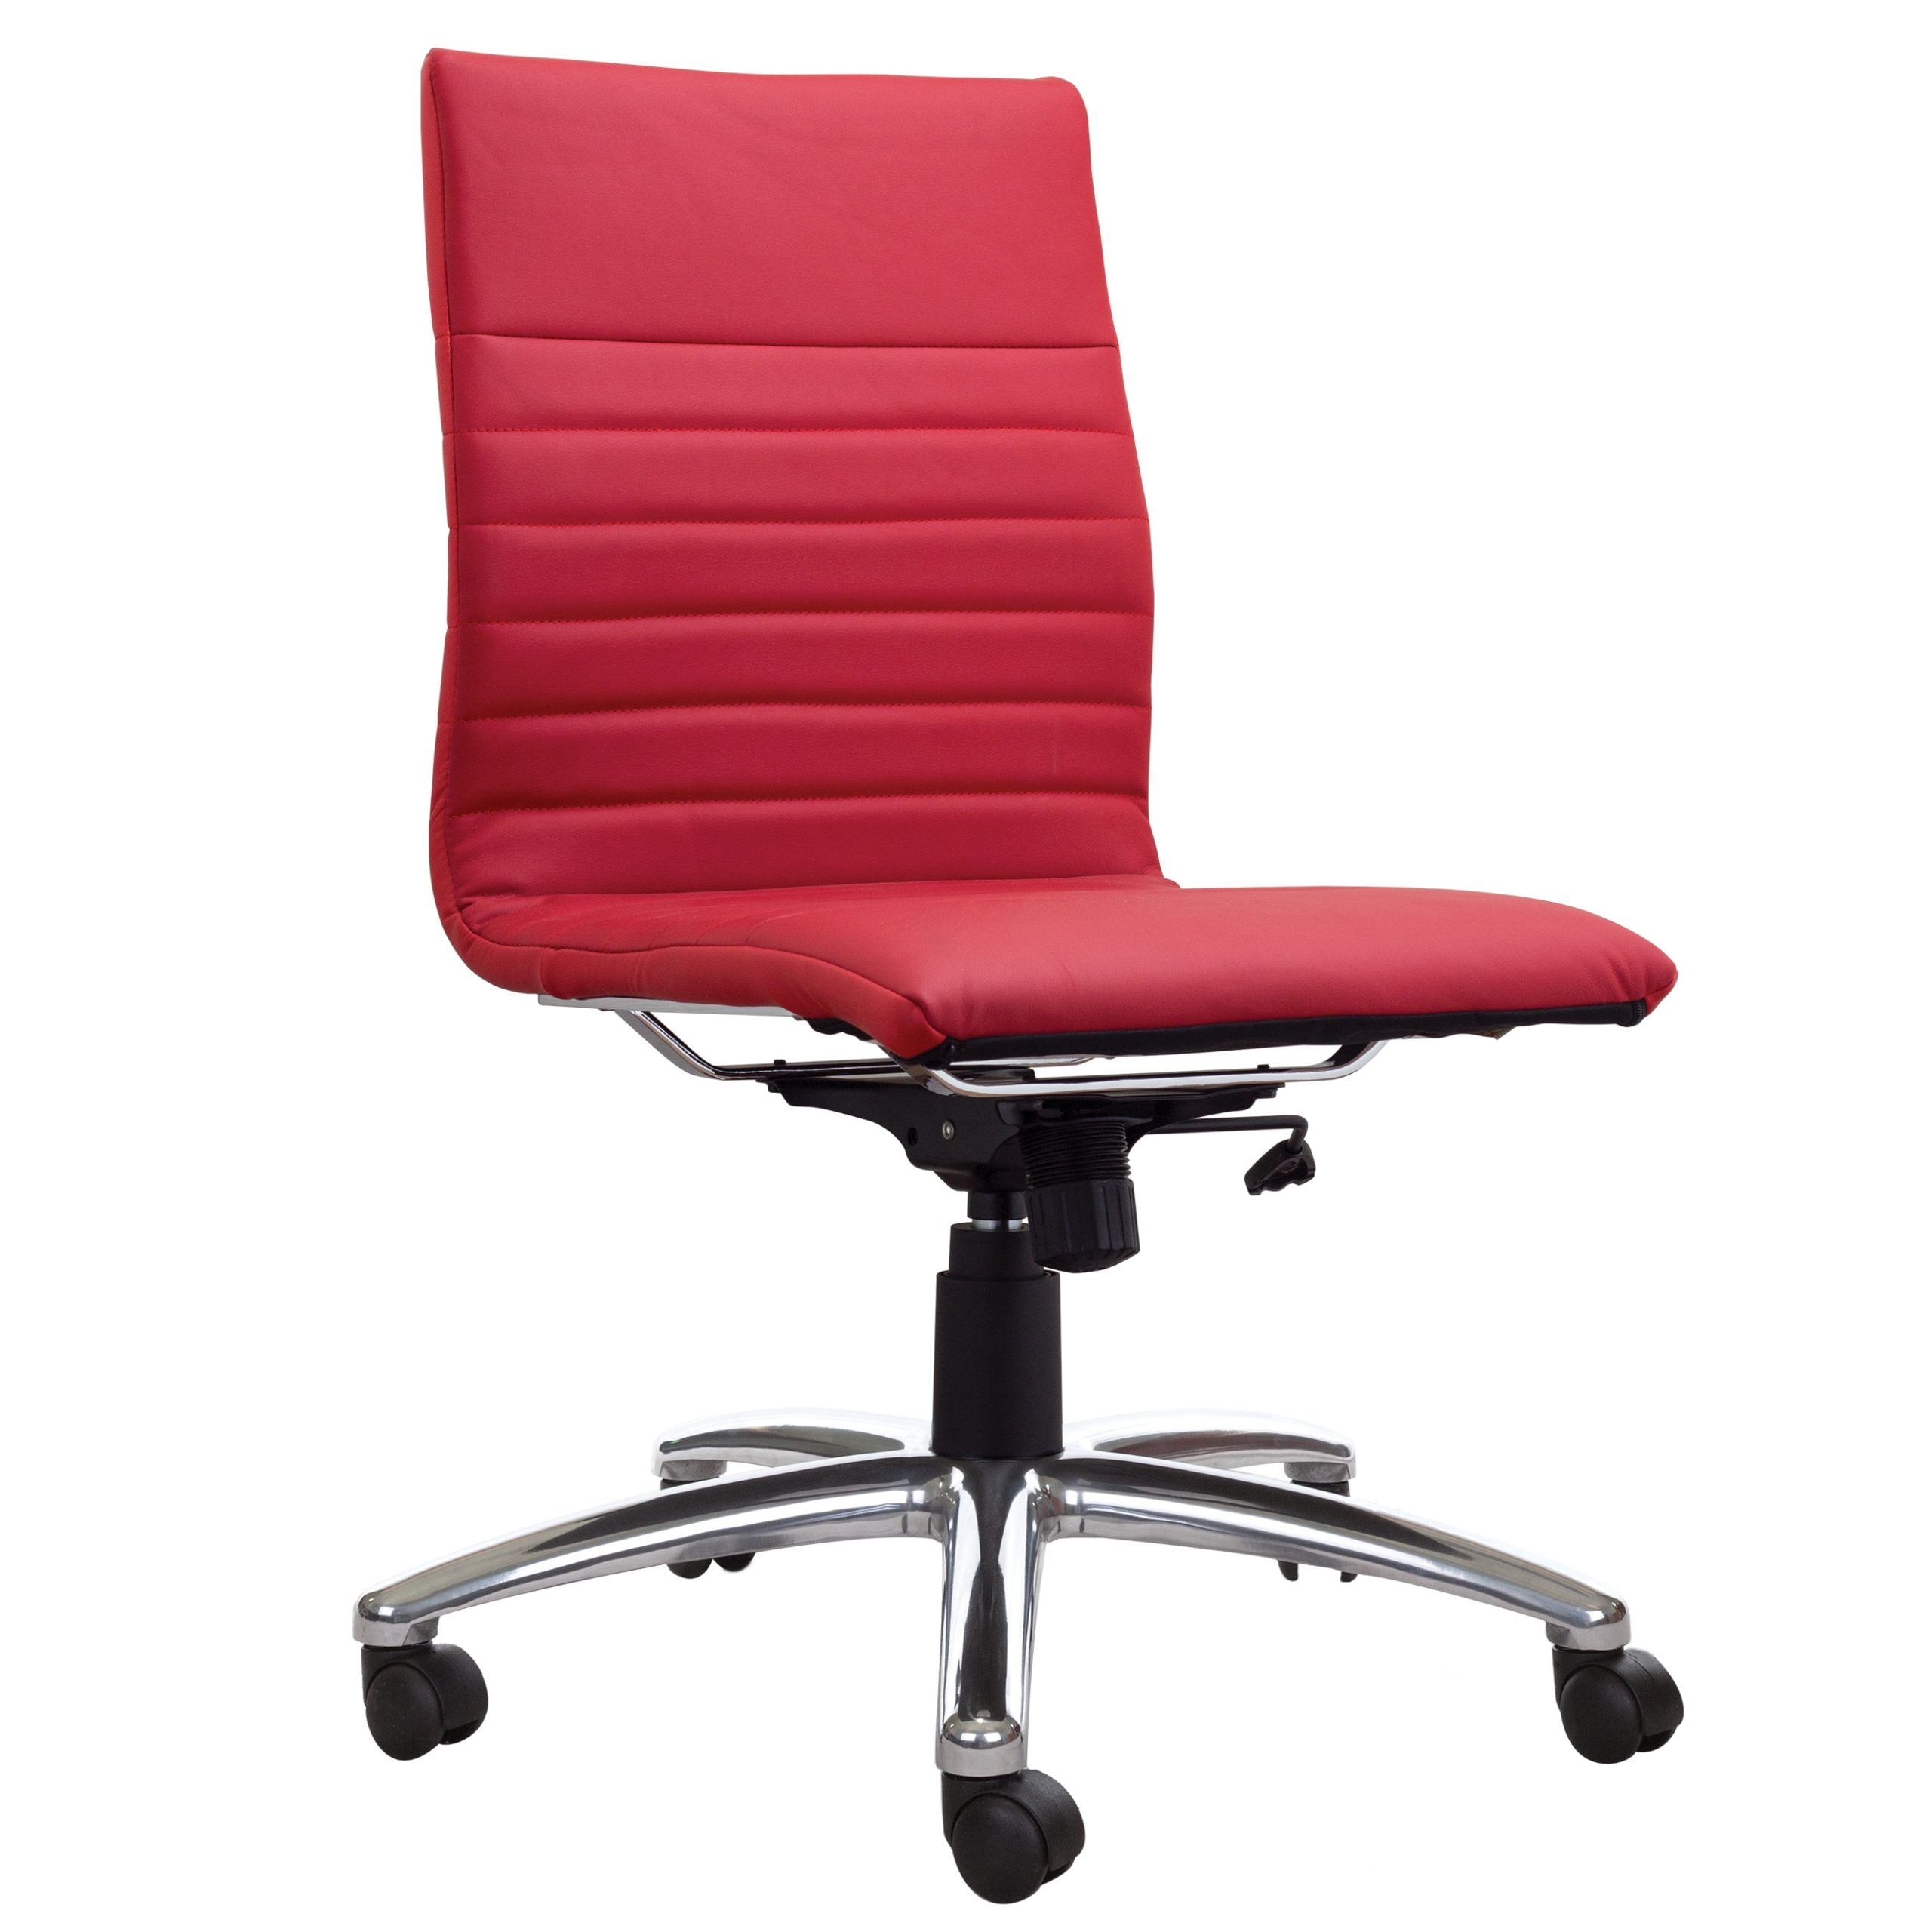 Modena Armless Task Chair - Red